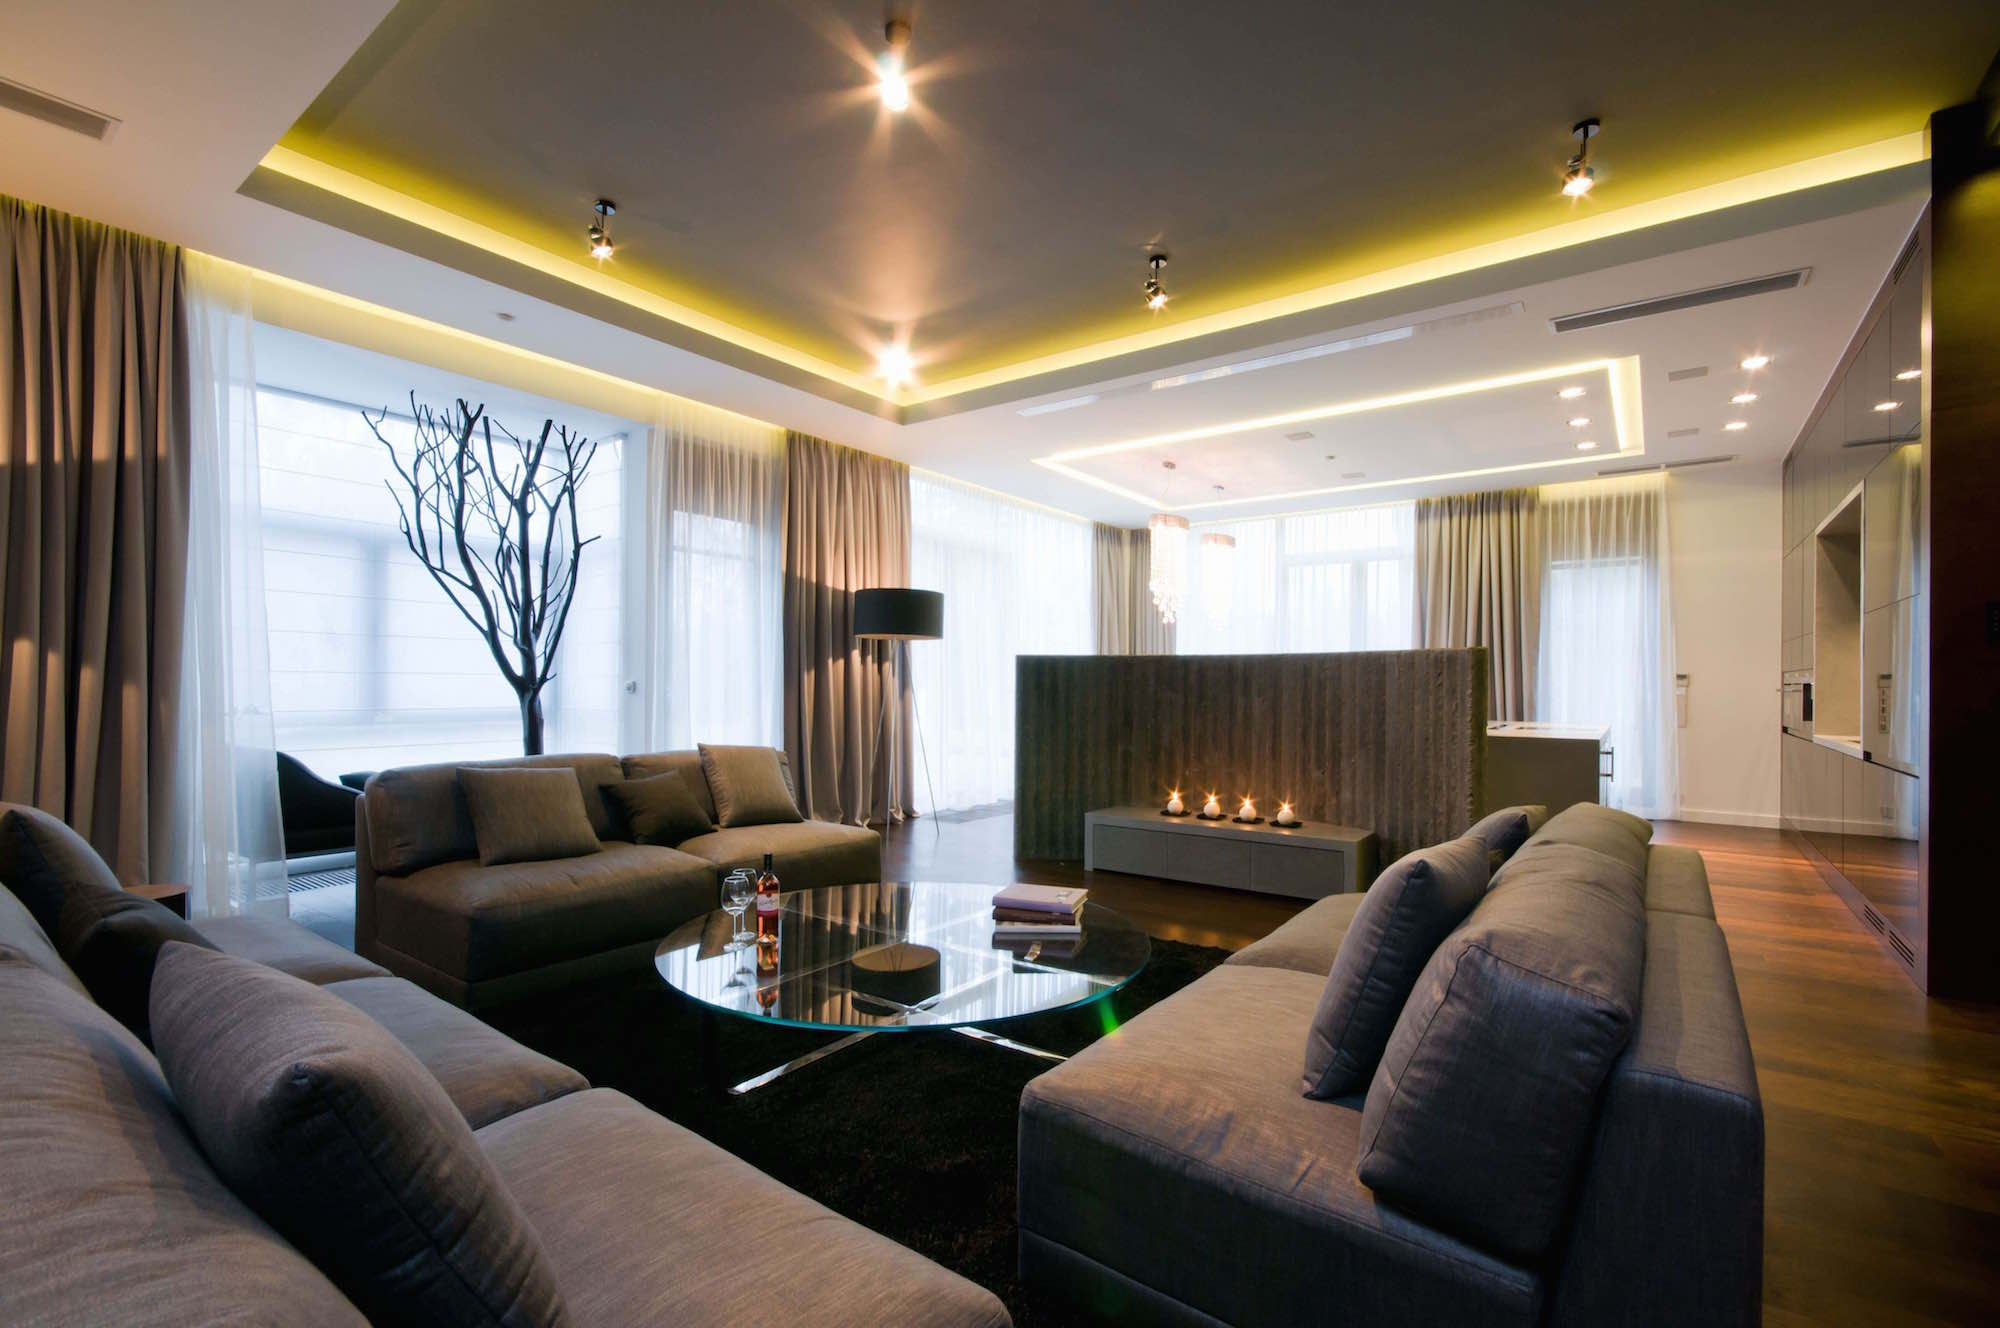 Apartment In Warsaw Poland By Hola Design